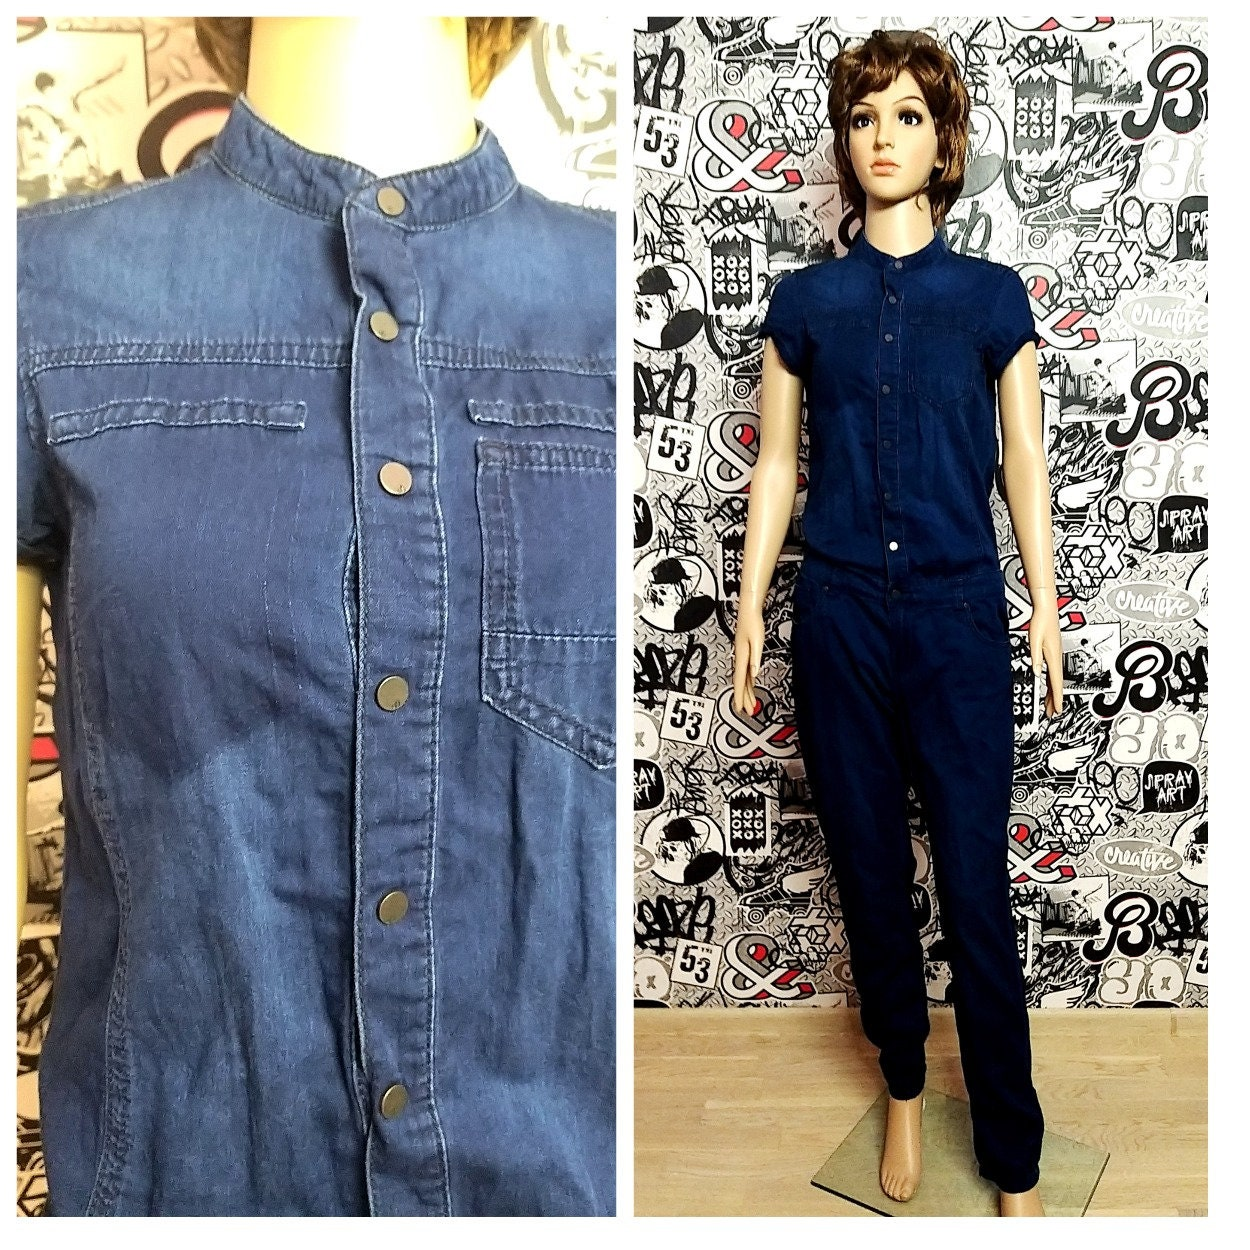 Vintage Overalls & Jumpsuits Womens Overall Pants Denim Overall S Vintage Jumpsuit Pants Jean Overalls Retro Coverall Grunge Jeans Coveralls $20.00 AT vintagedancer.com